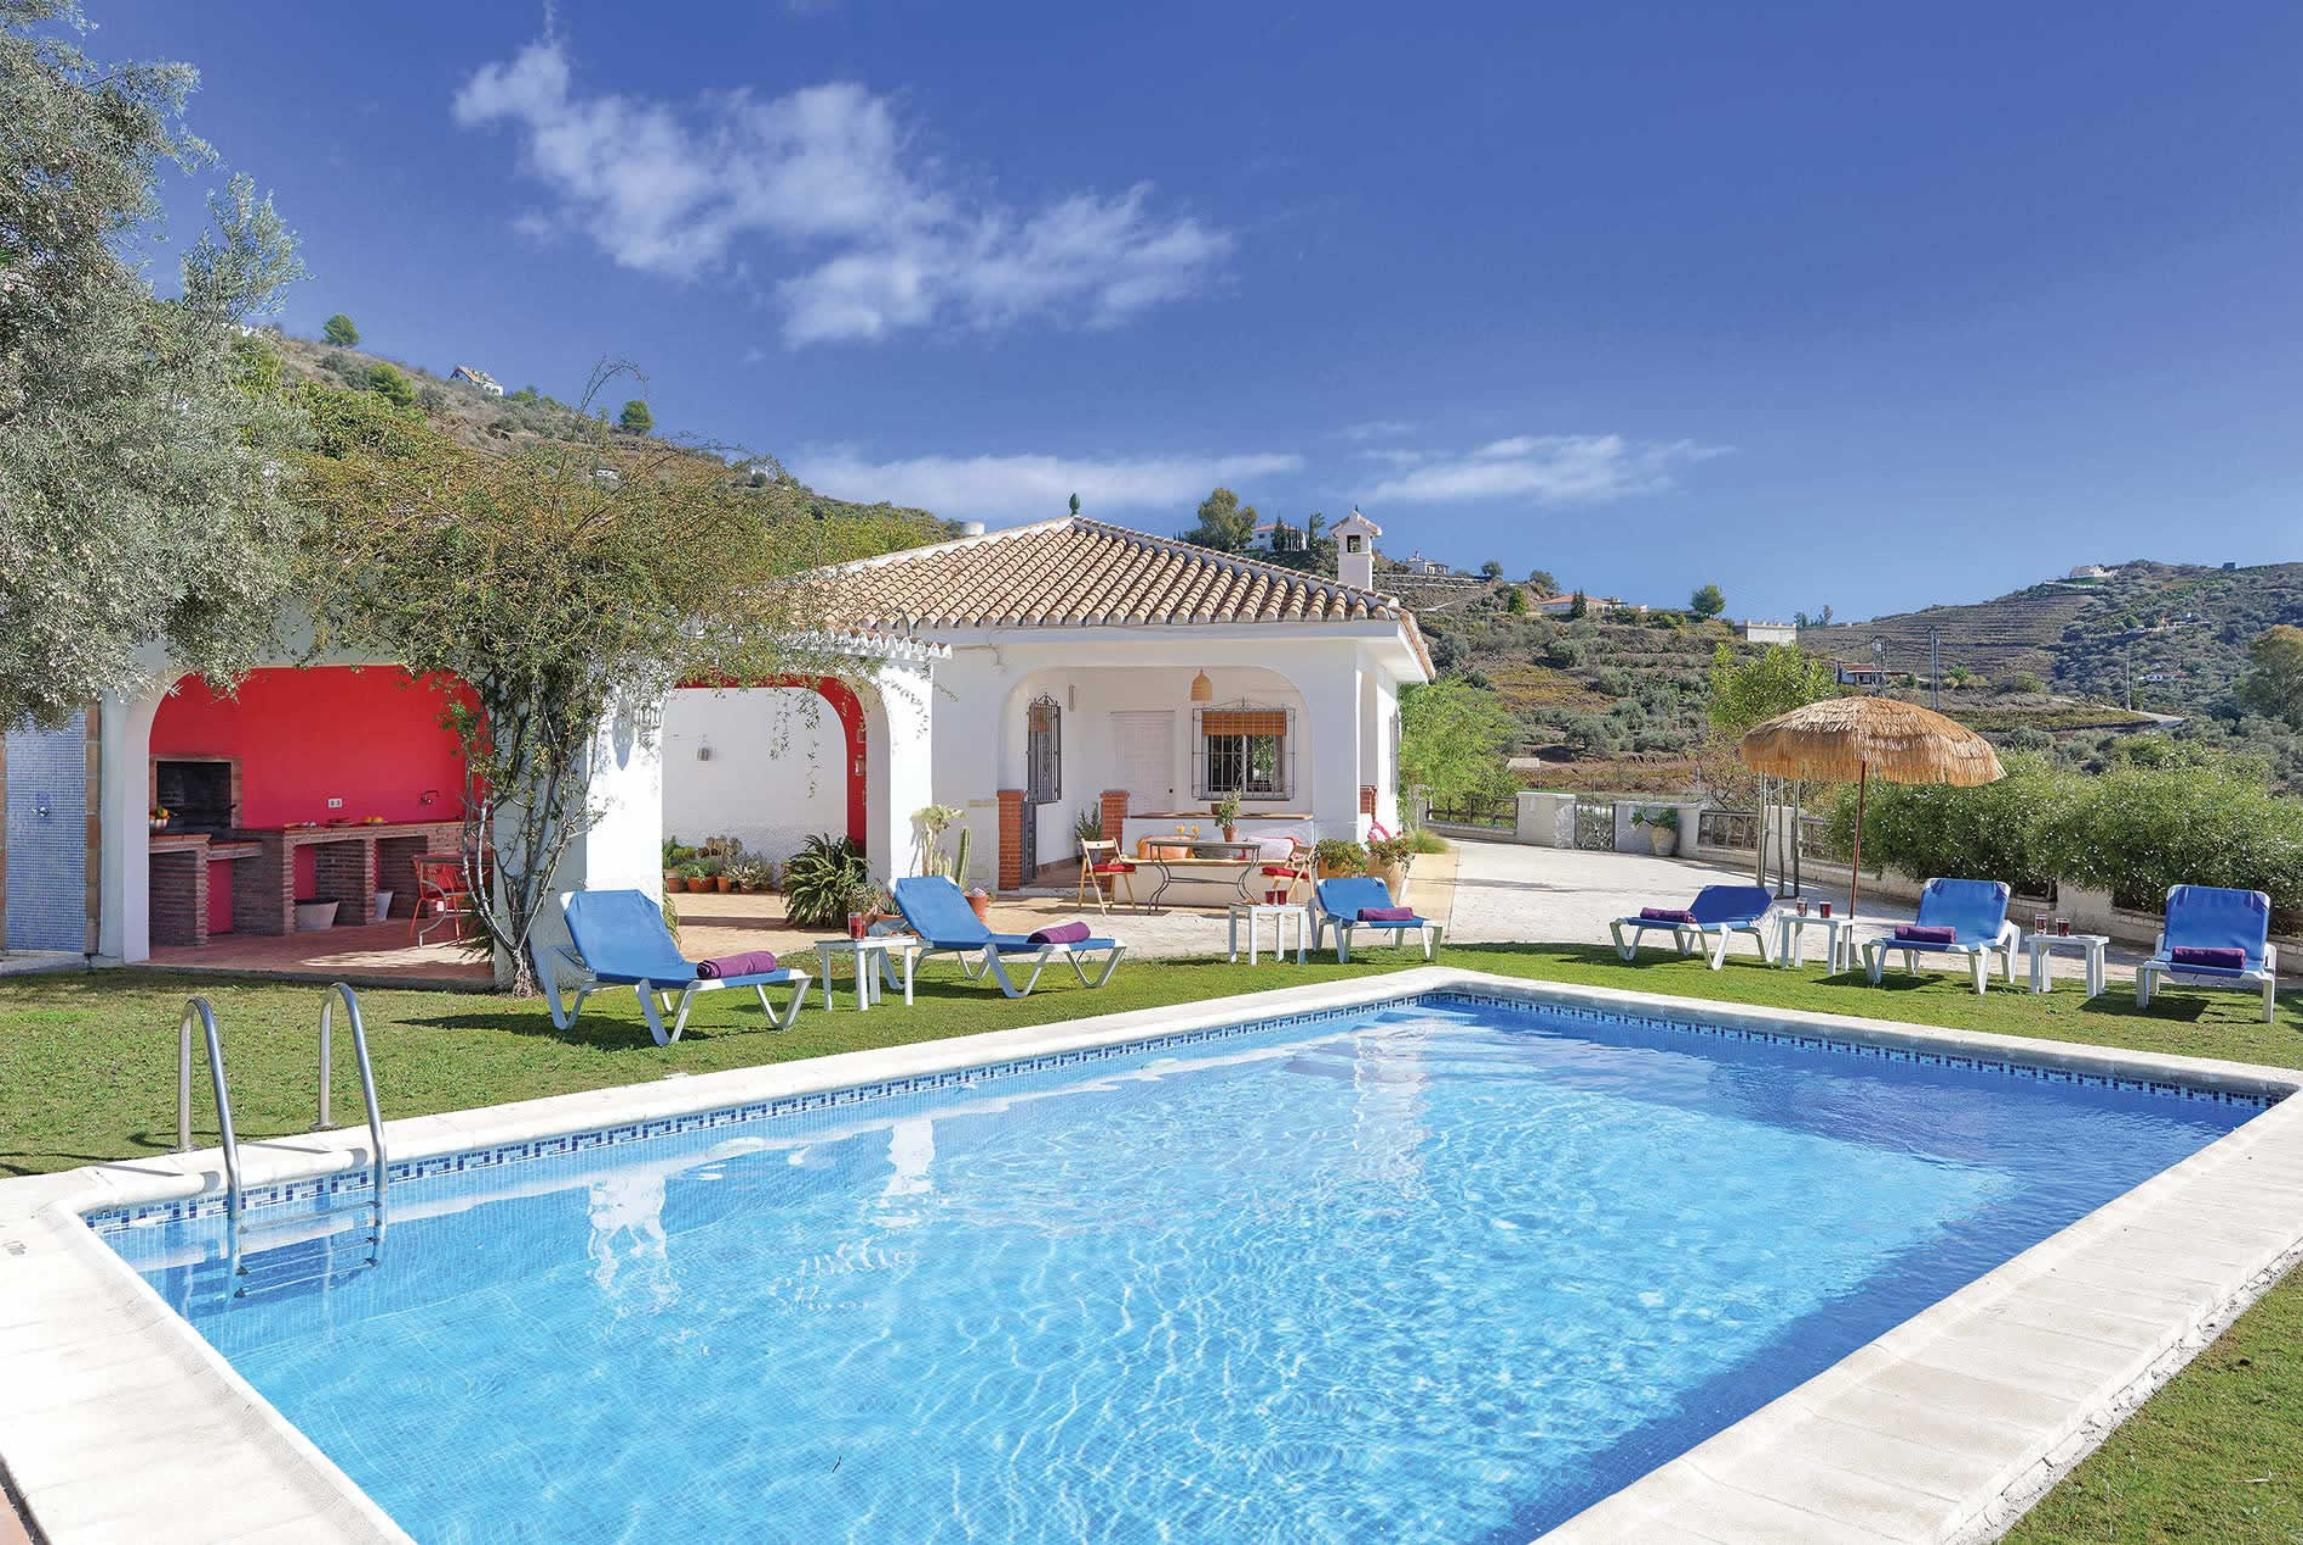 Read more about La Higuera villa